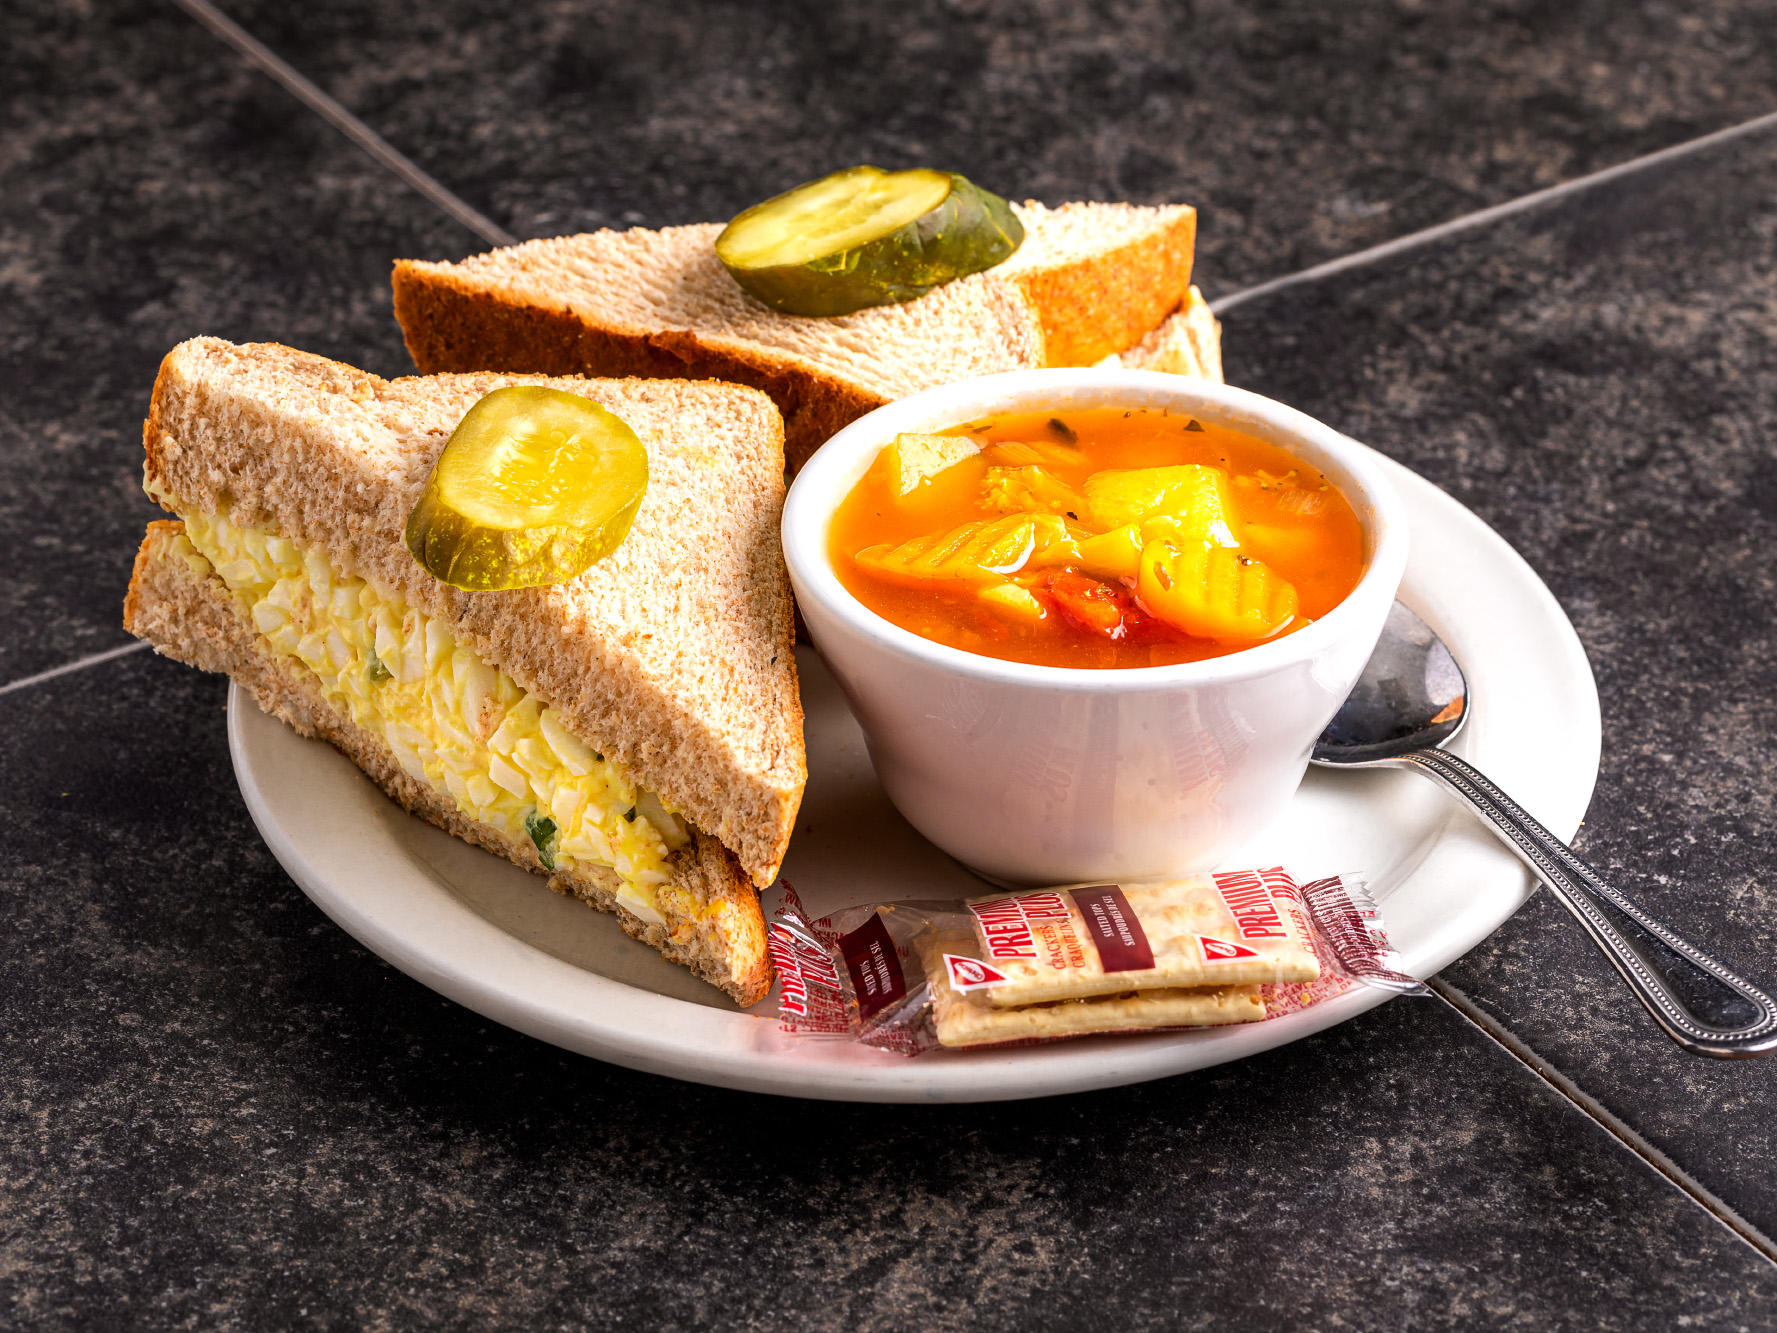 soup and sandwich on a plate